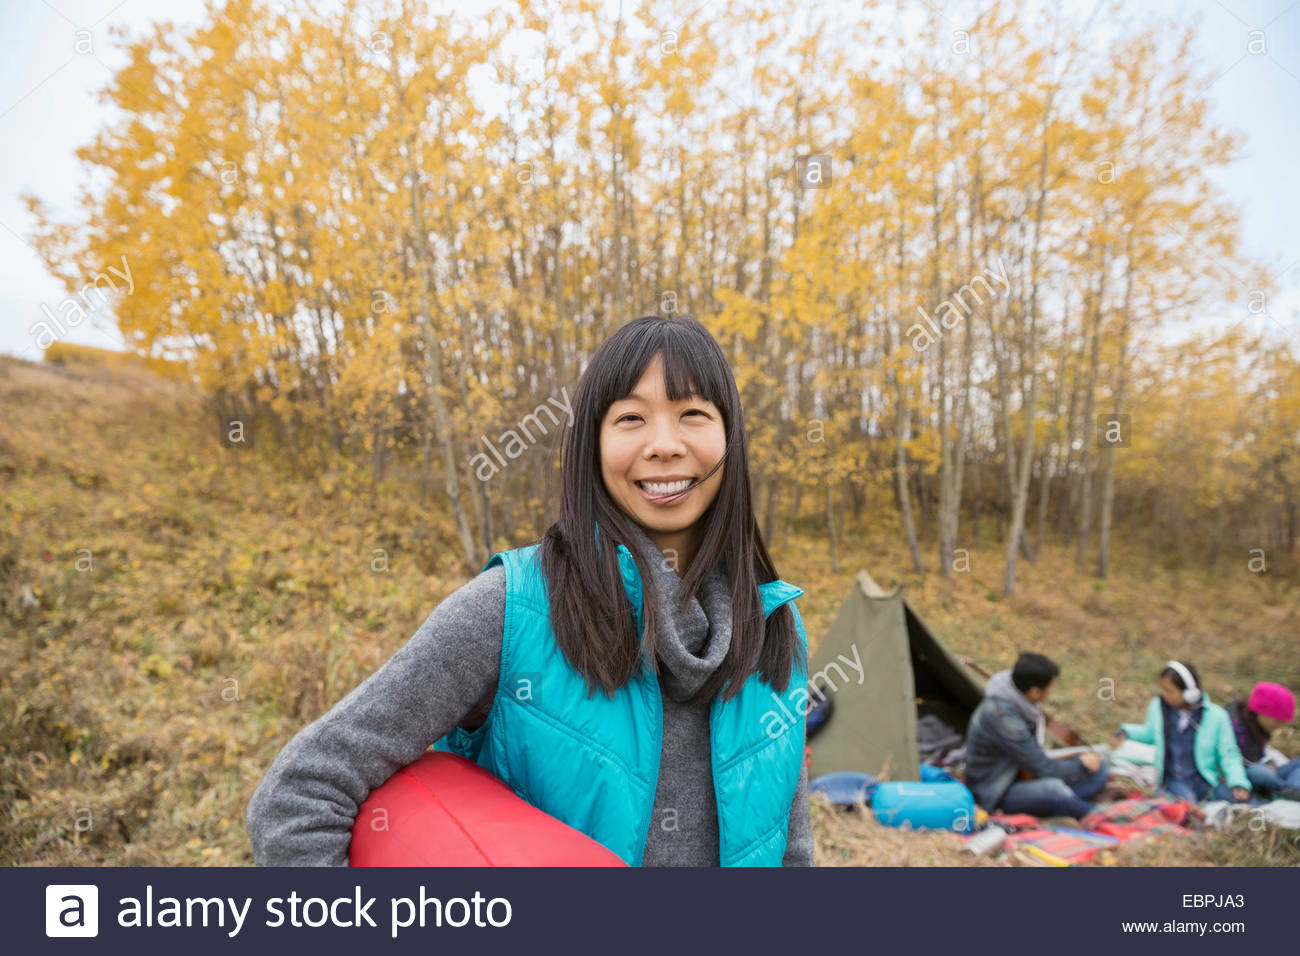 Portrait of smiling woman camping with family - Stock Image